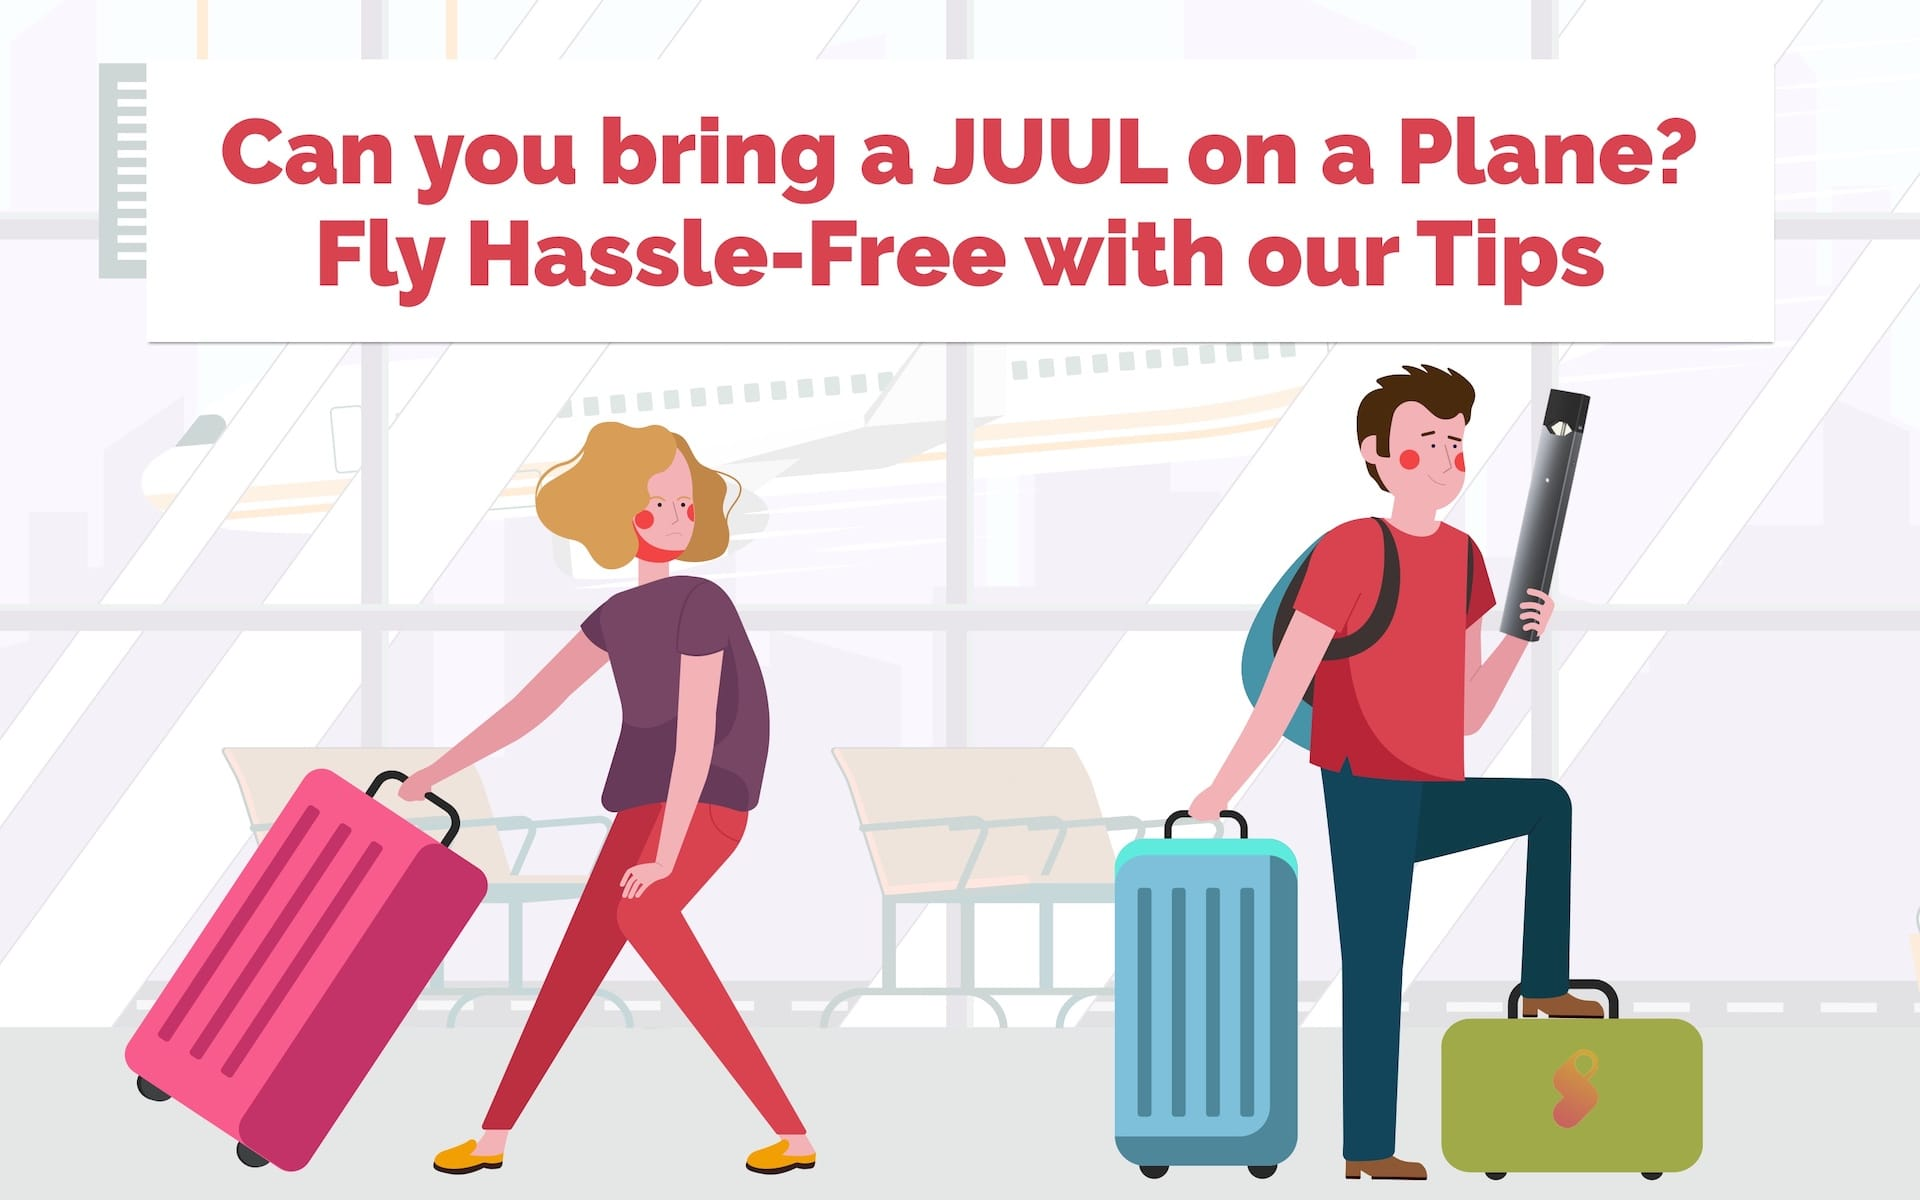 can you bring a juul on a plane guide full